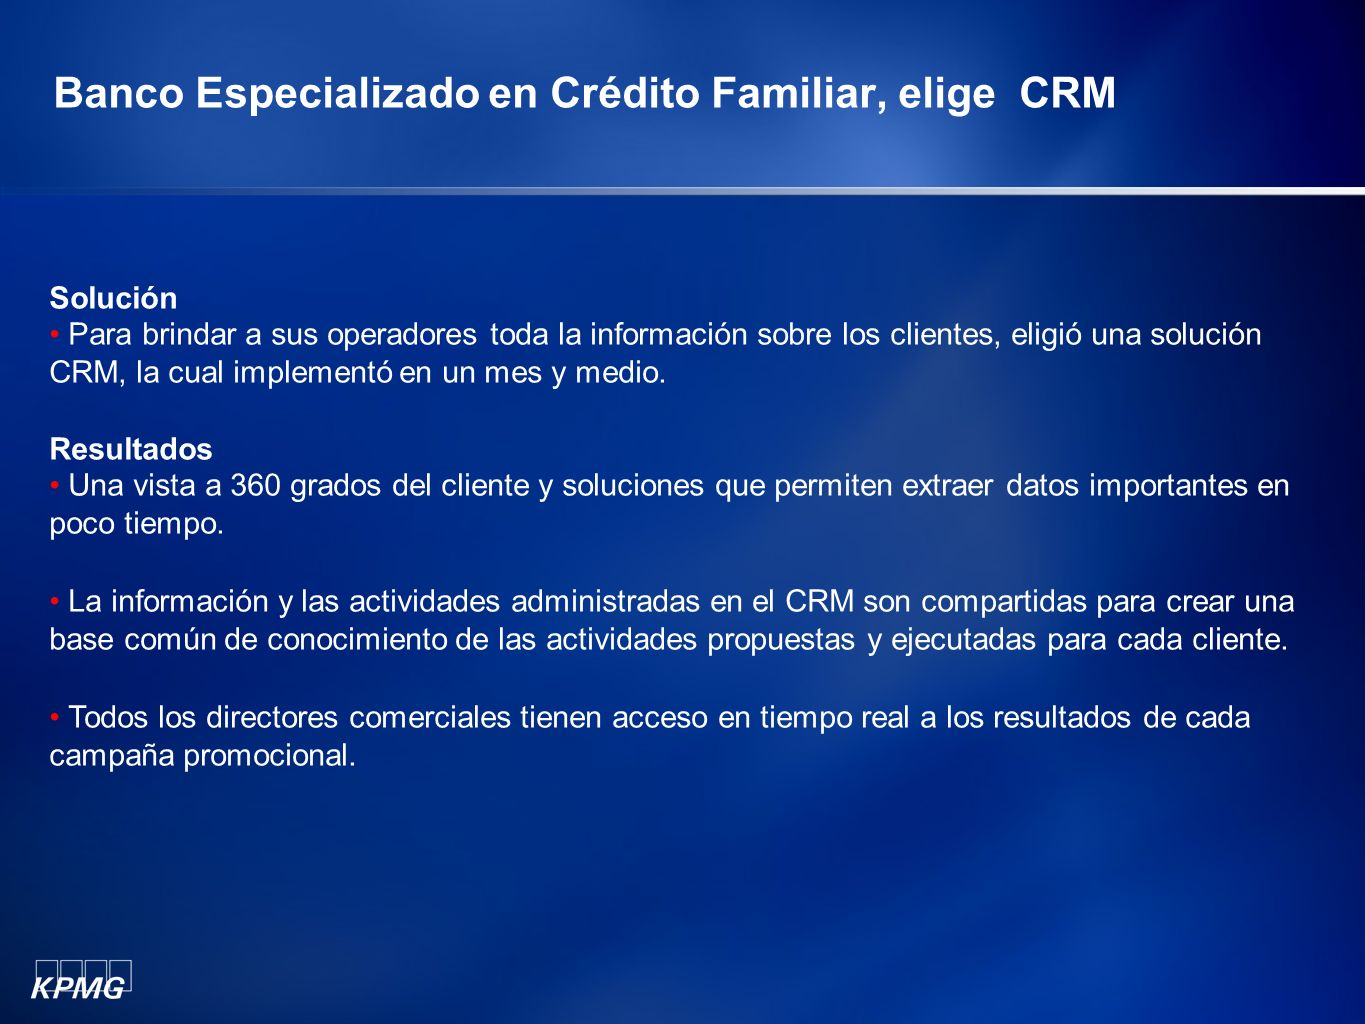 Banco Especializado en Crédito Familiar, elige CRM